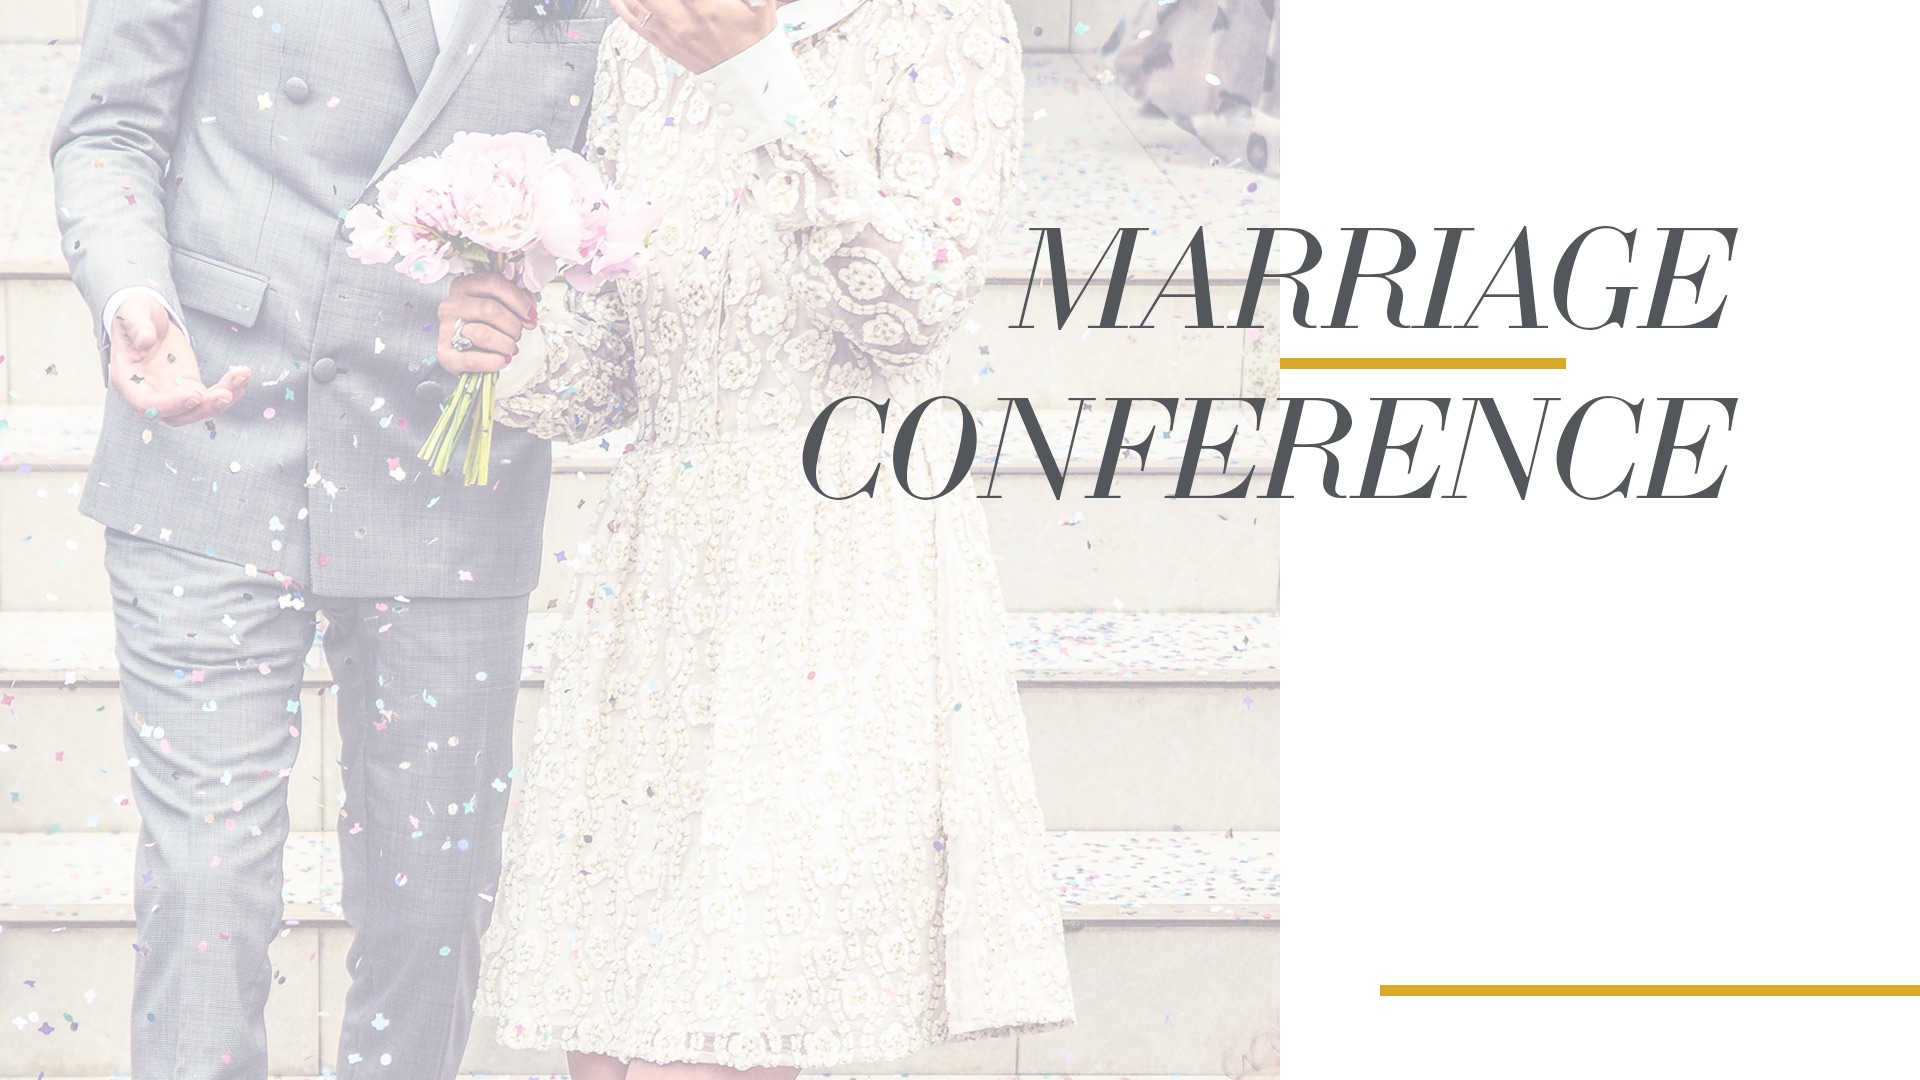 Fierce marriage conference